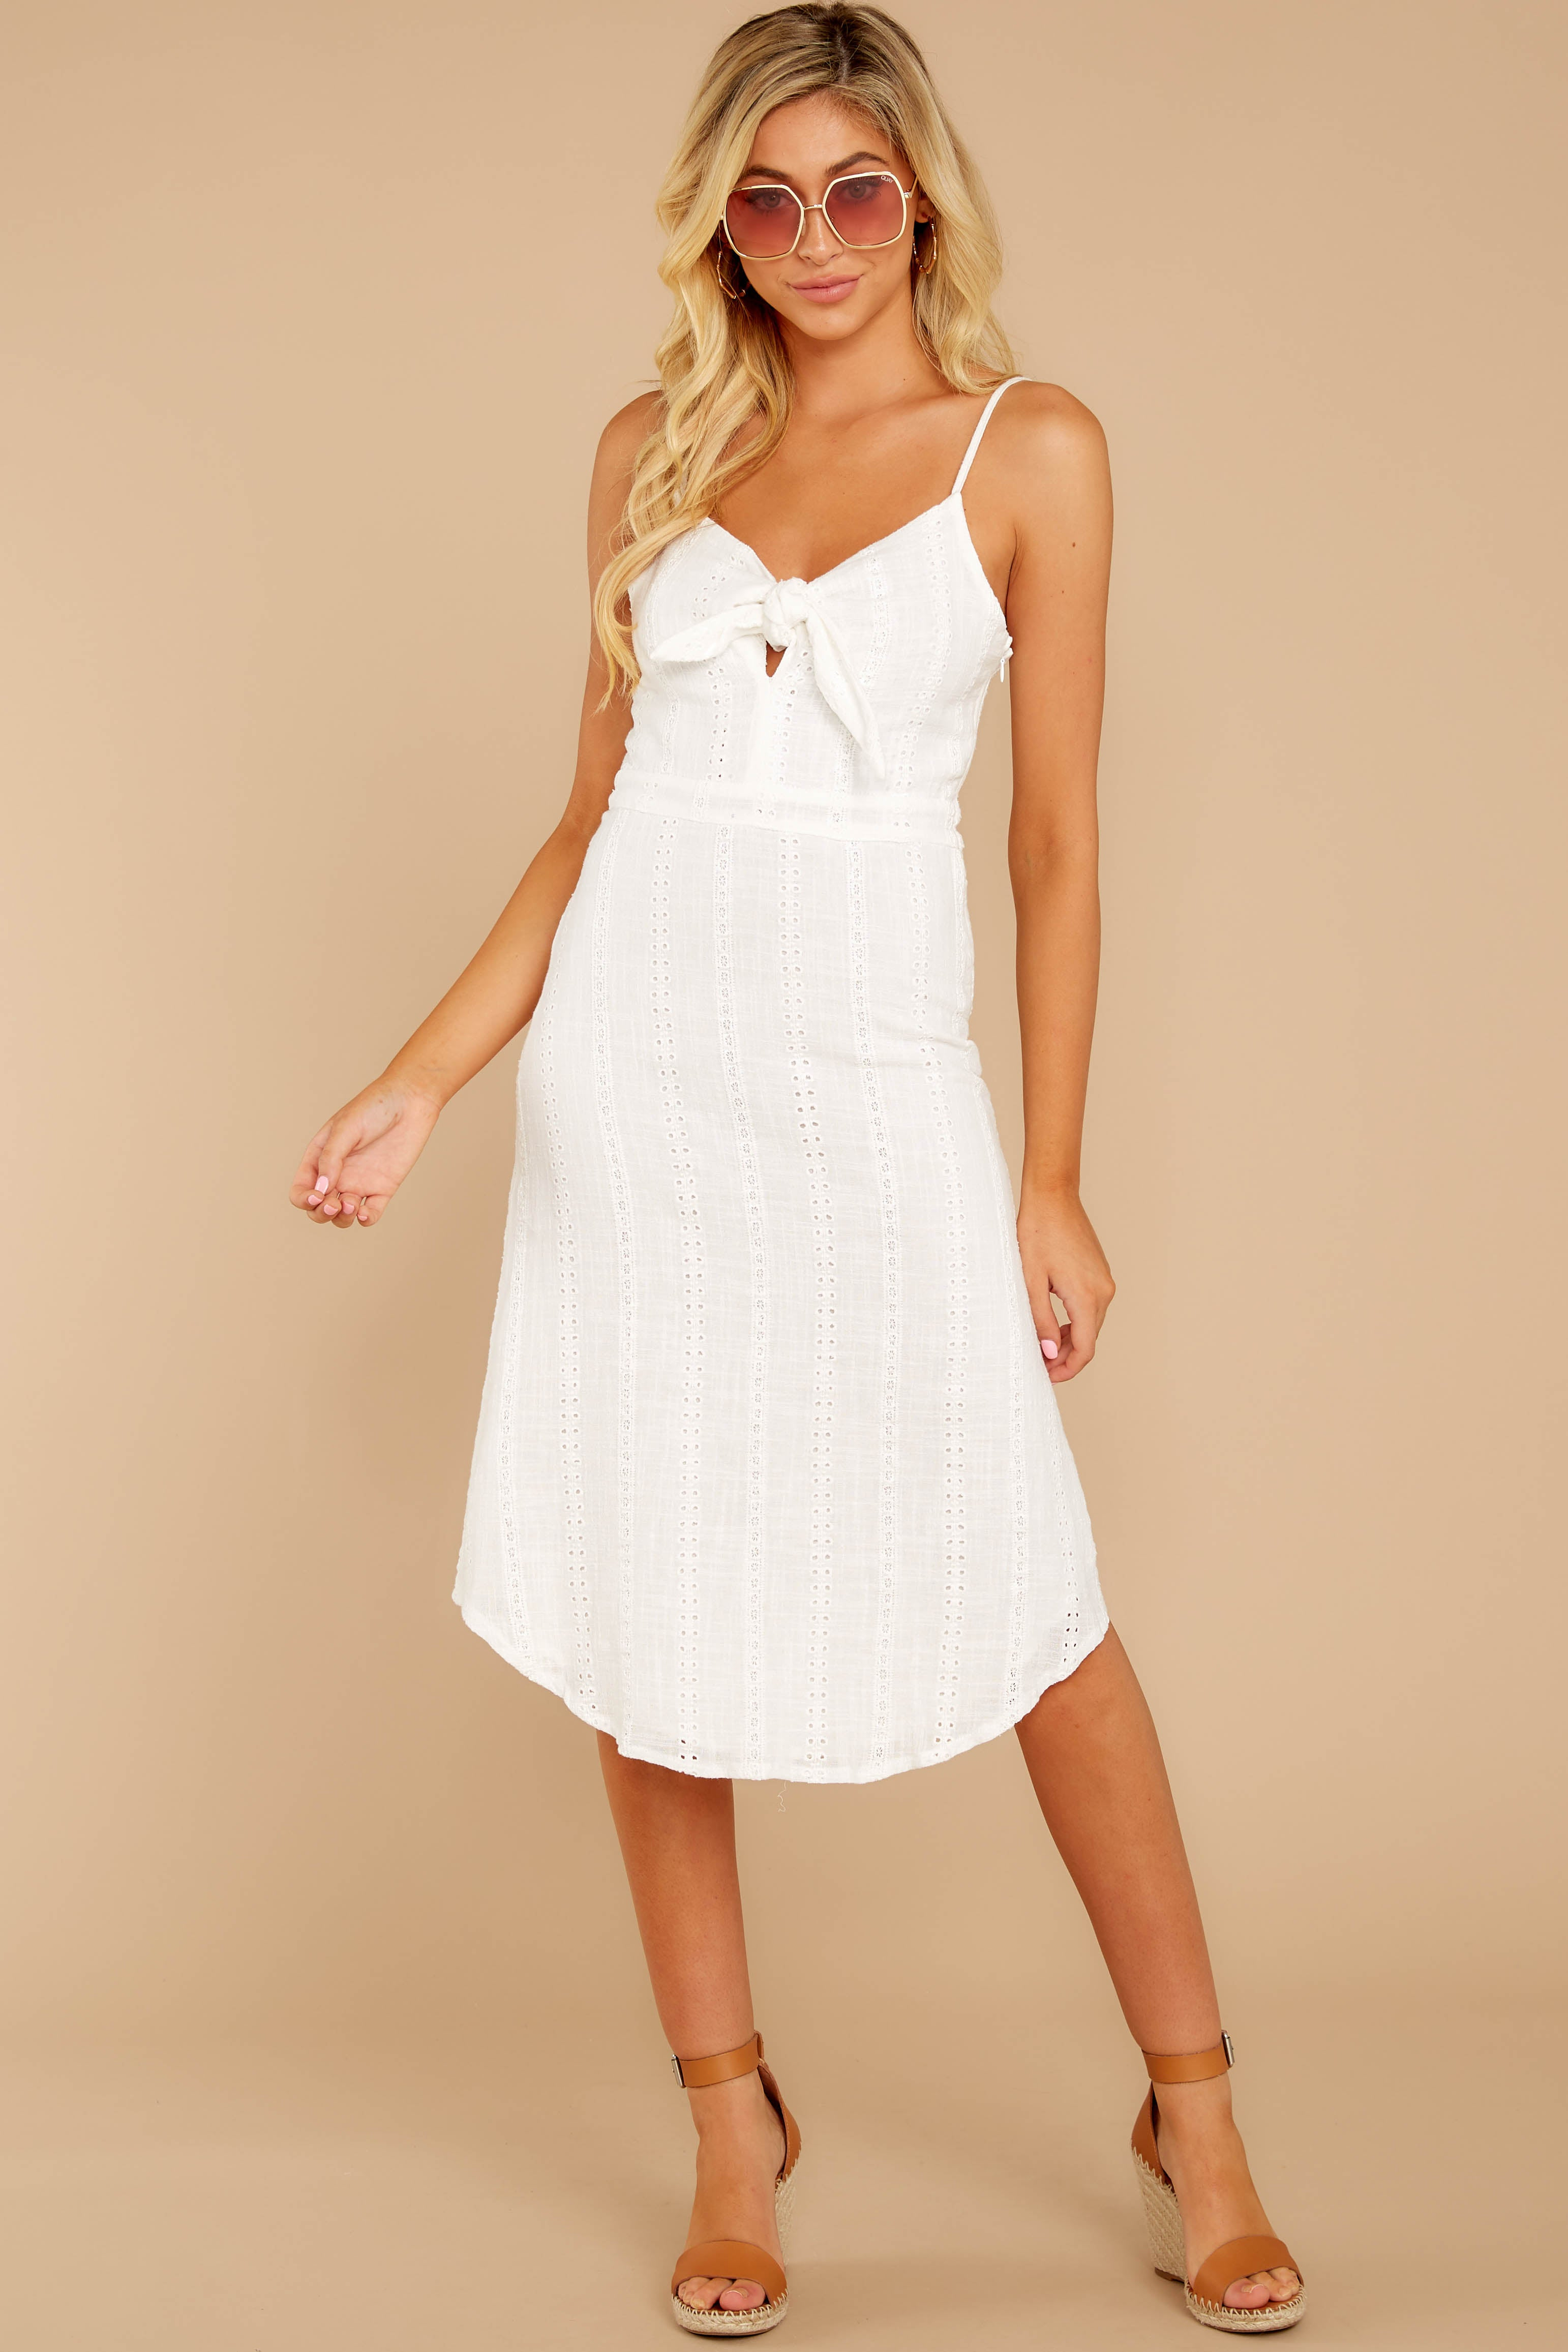 6 Impression Of Love White Eyelet Midi Dress at reddress.com